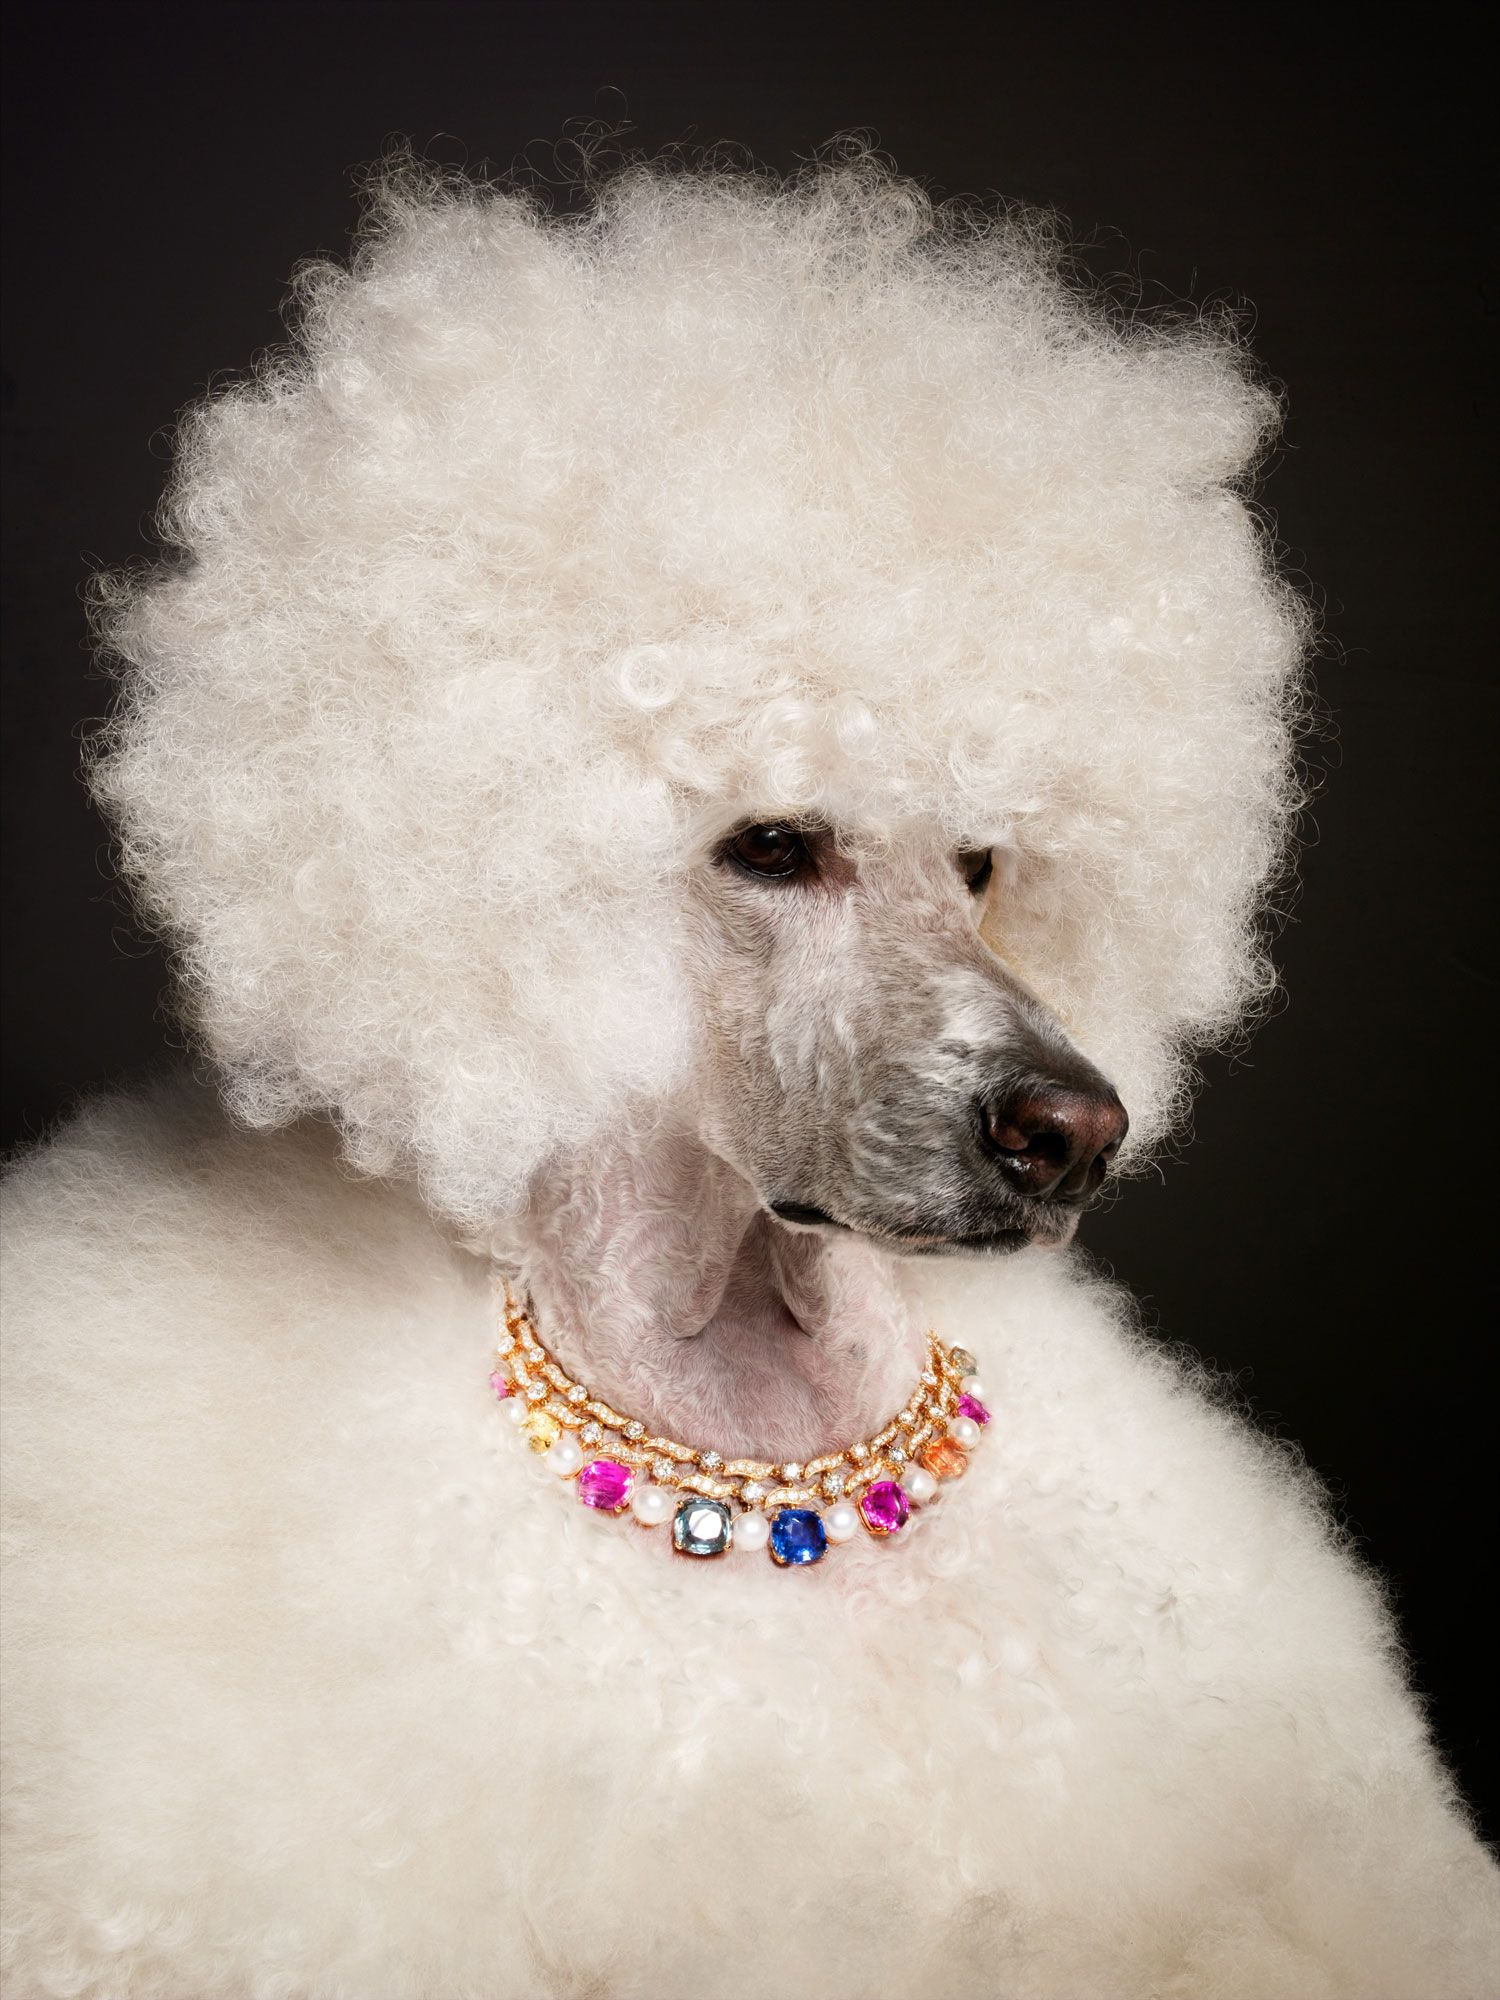 torkil gudnason jewelry animals poodle